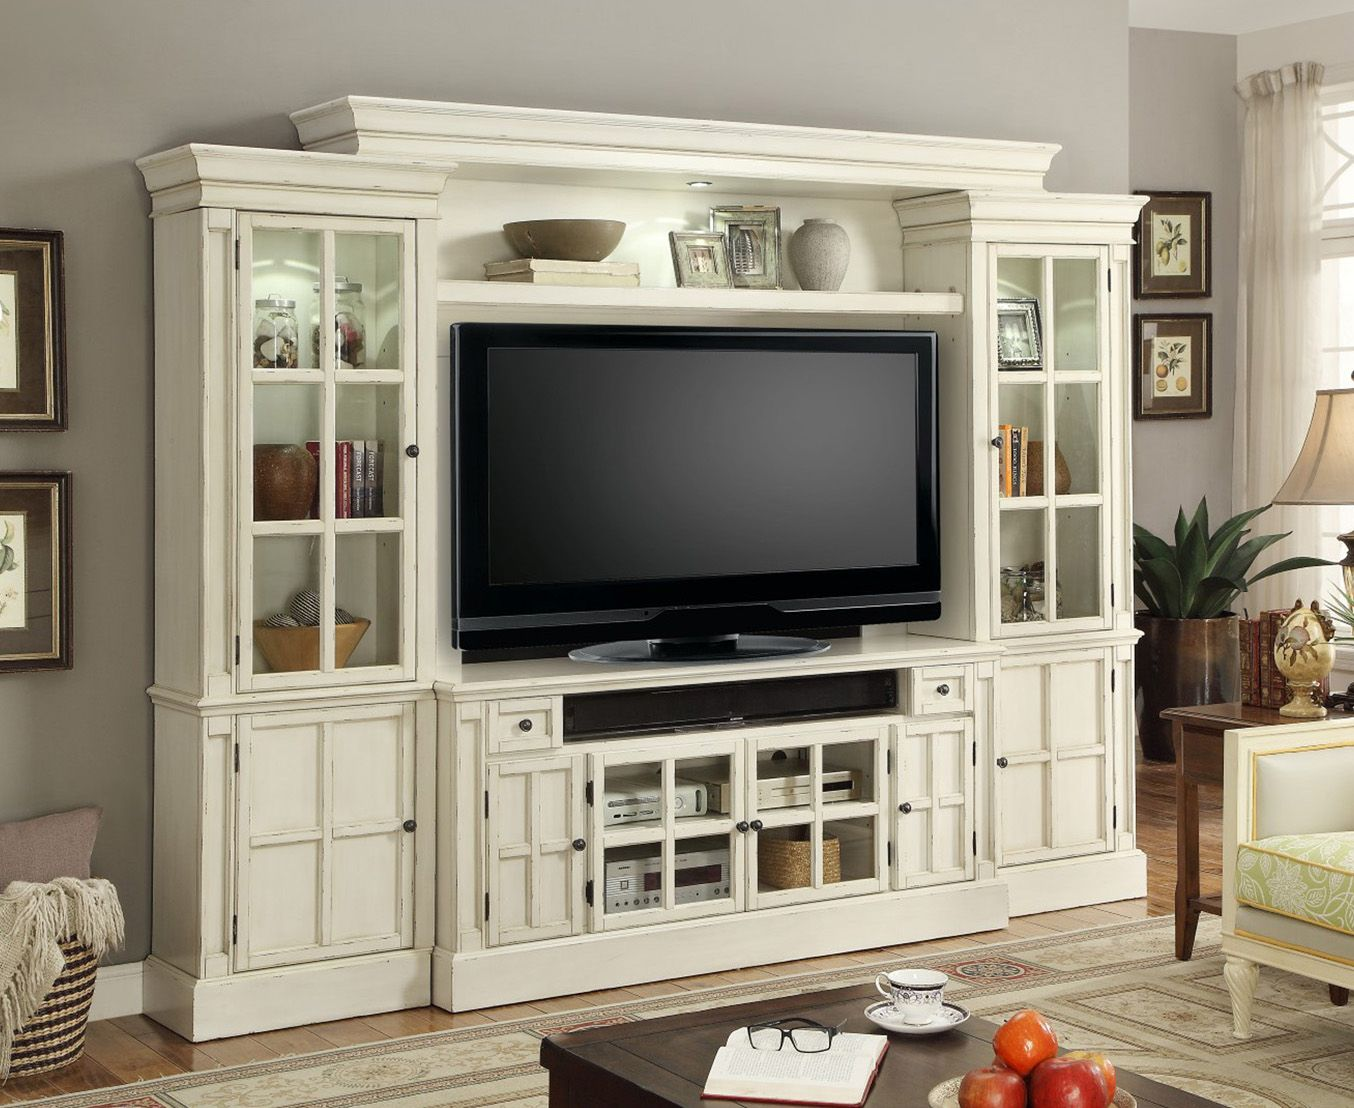 How To Choose An Entertainment Center Media Furniture